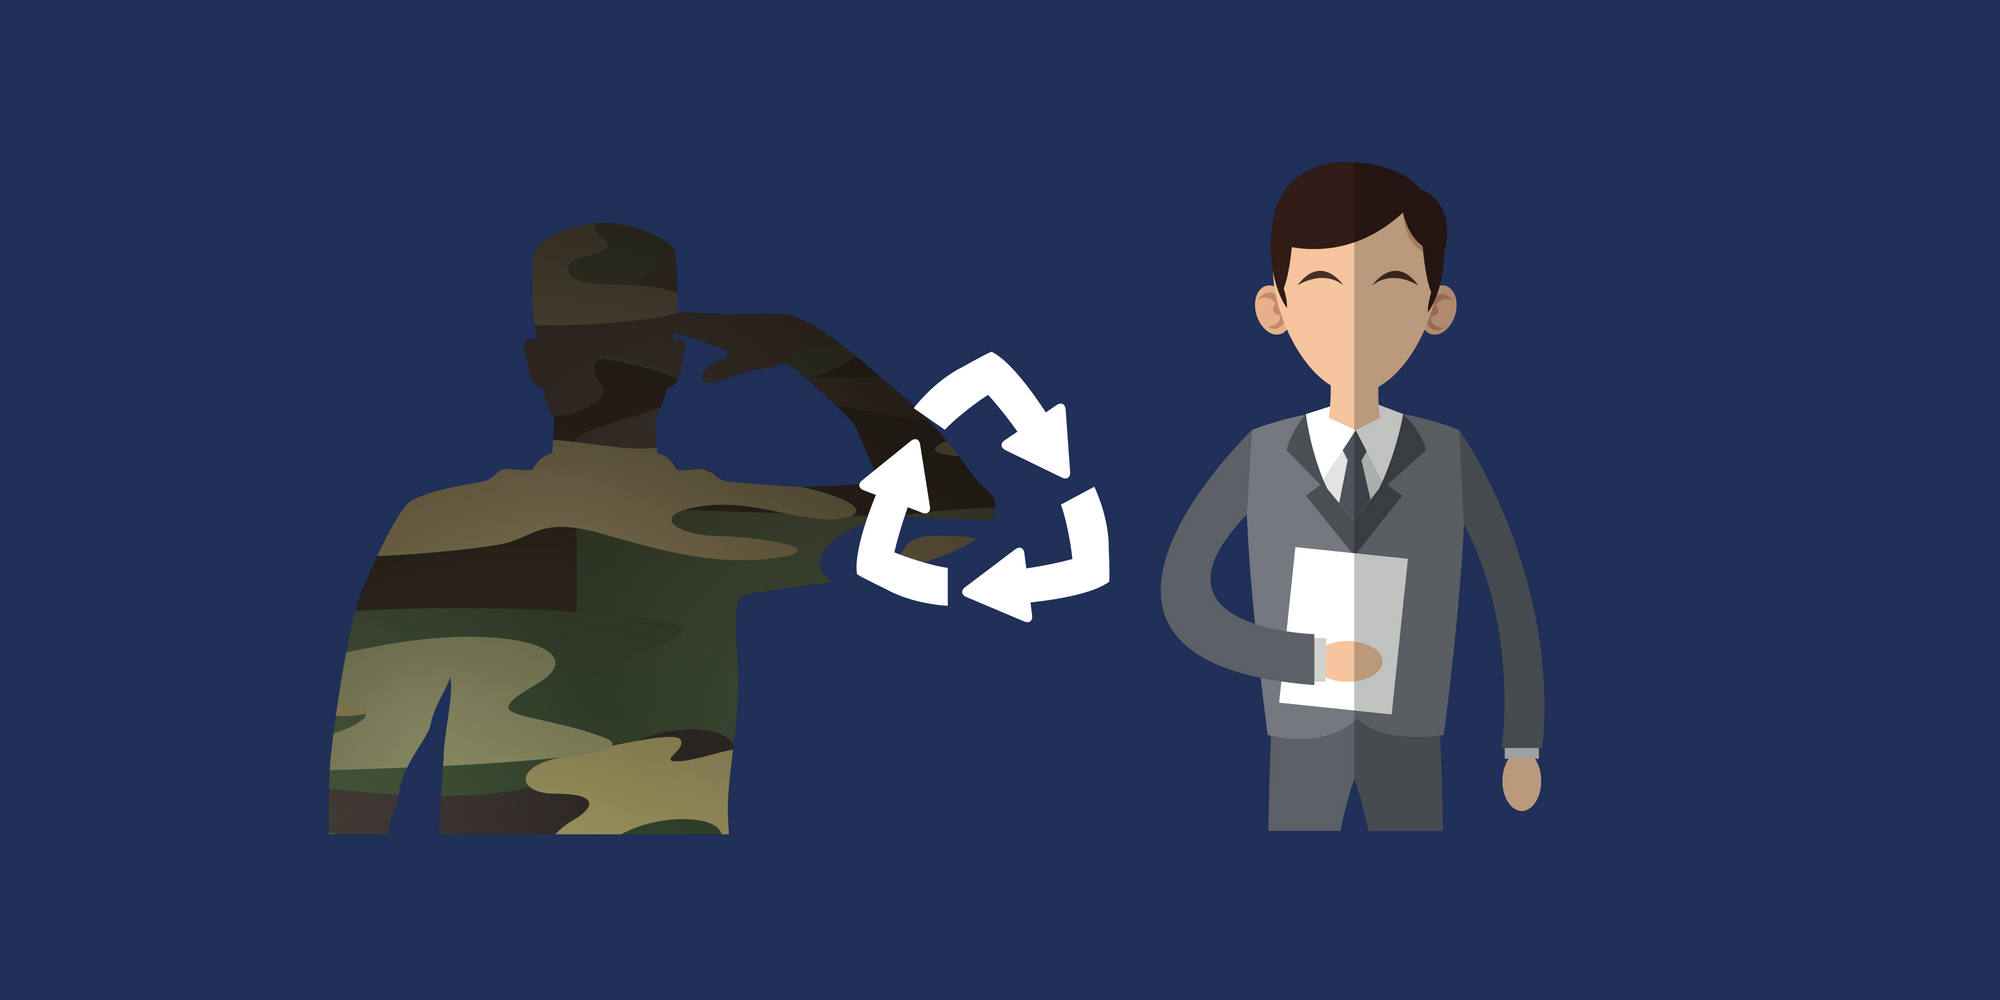 Military to Civilian Resume Graphic representation